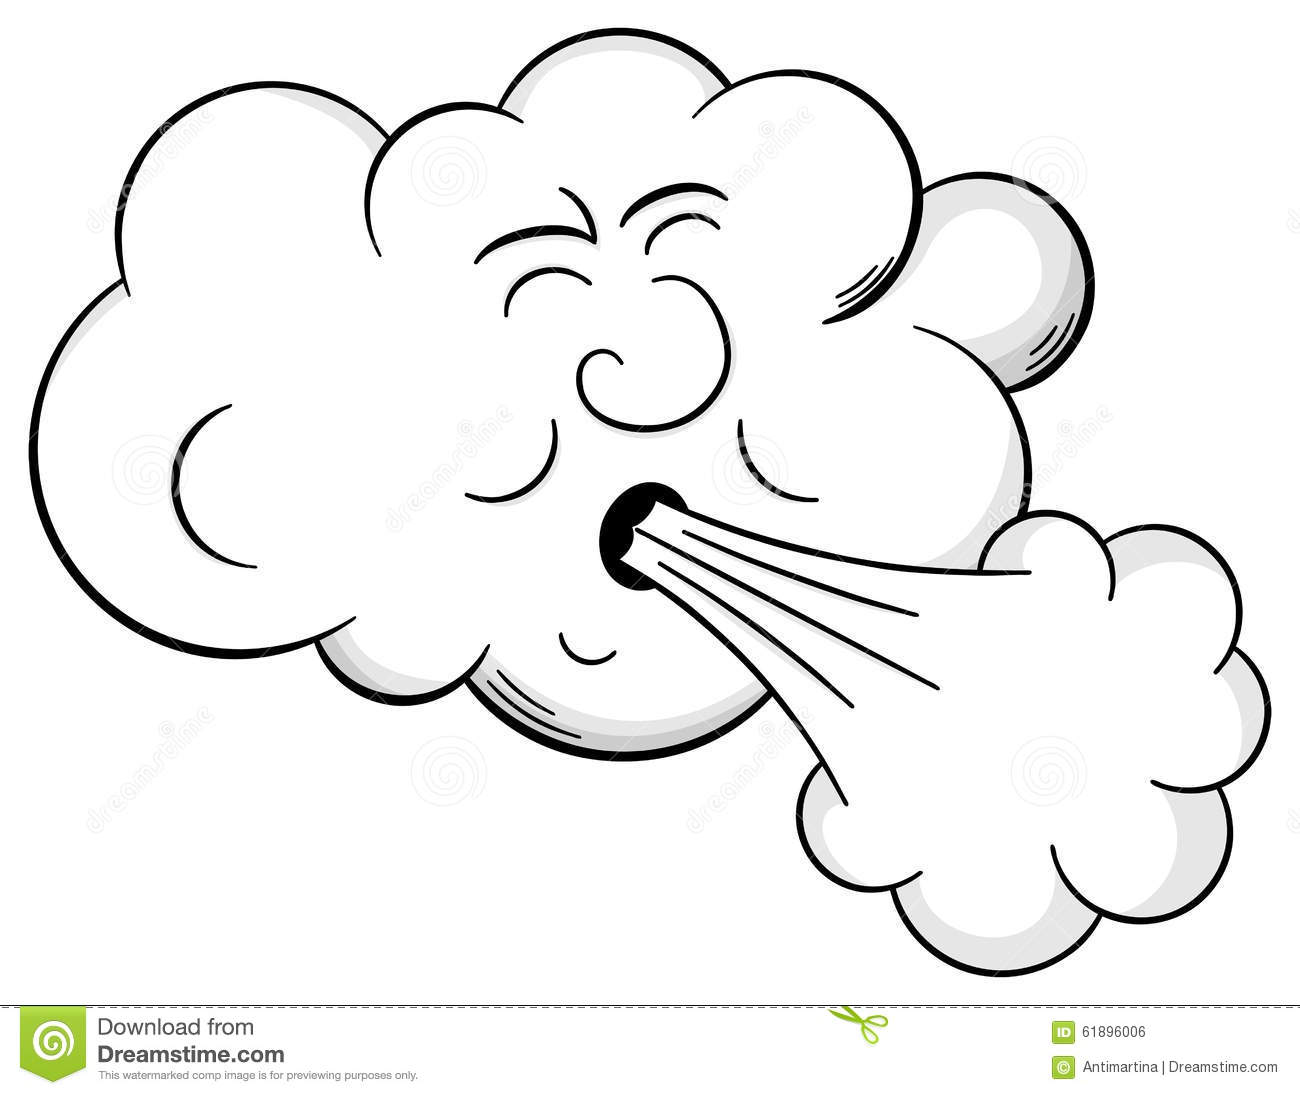 Cartoon Cloud Blows Wind Stock Vector - Image: 61896006